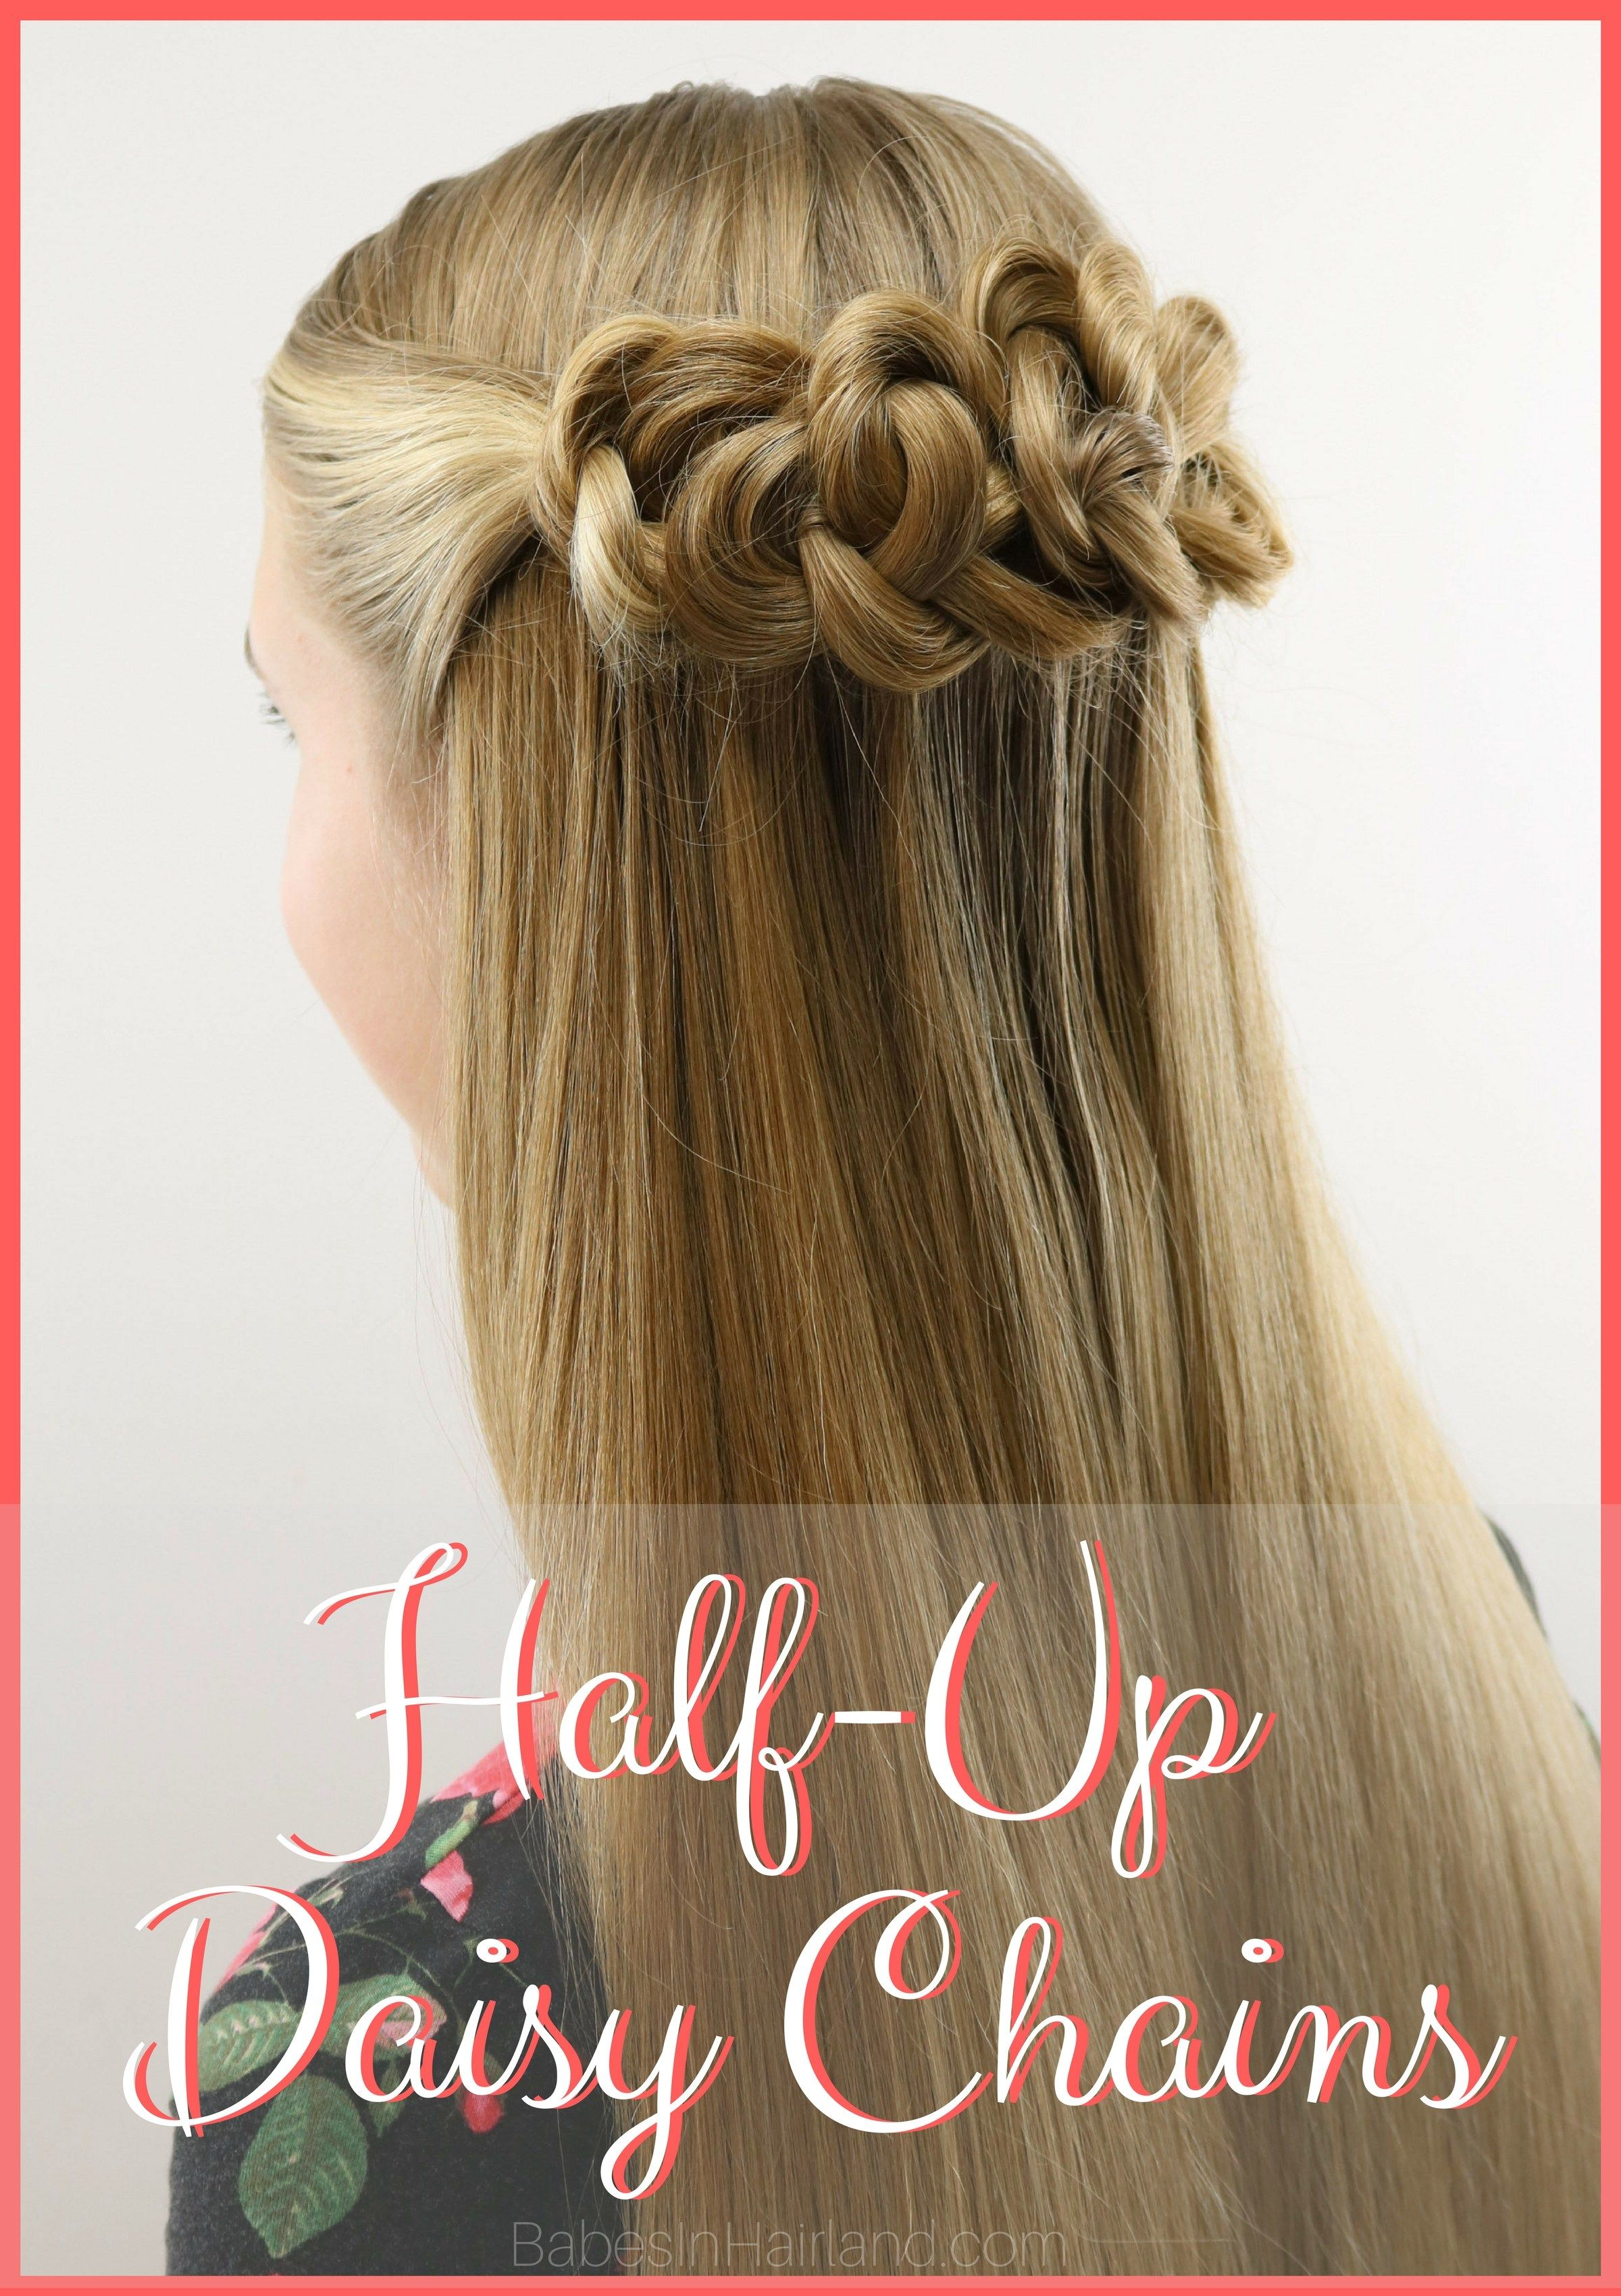 Halfup daisy chains hairstyle knot hairstyles prom hairstyles